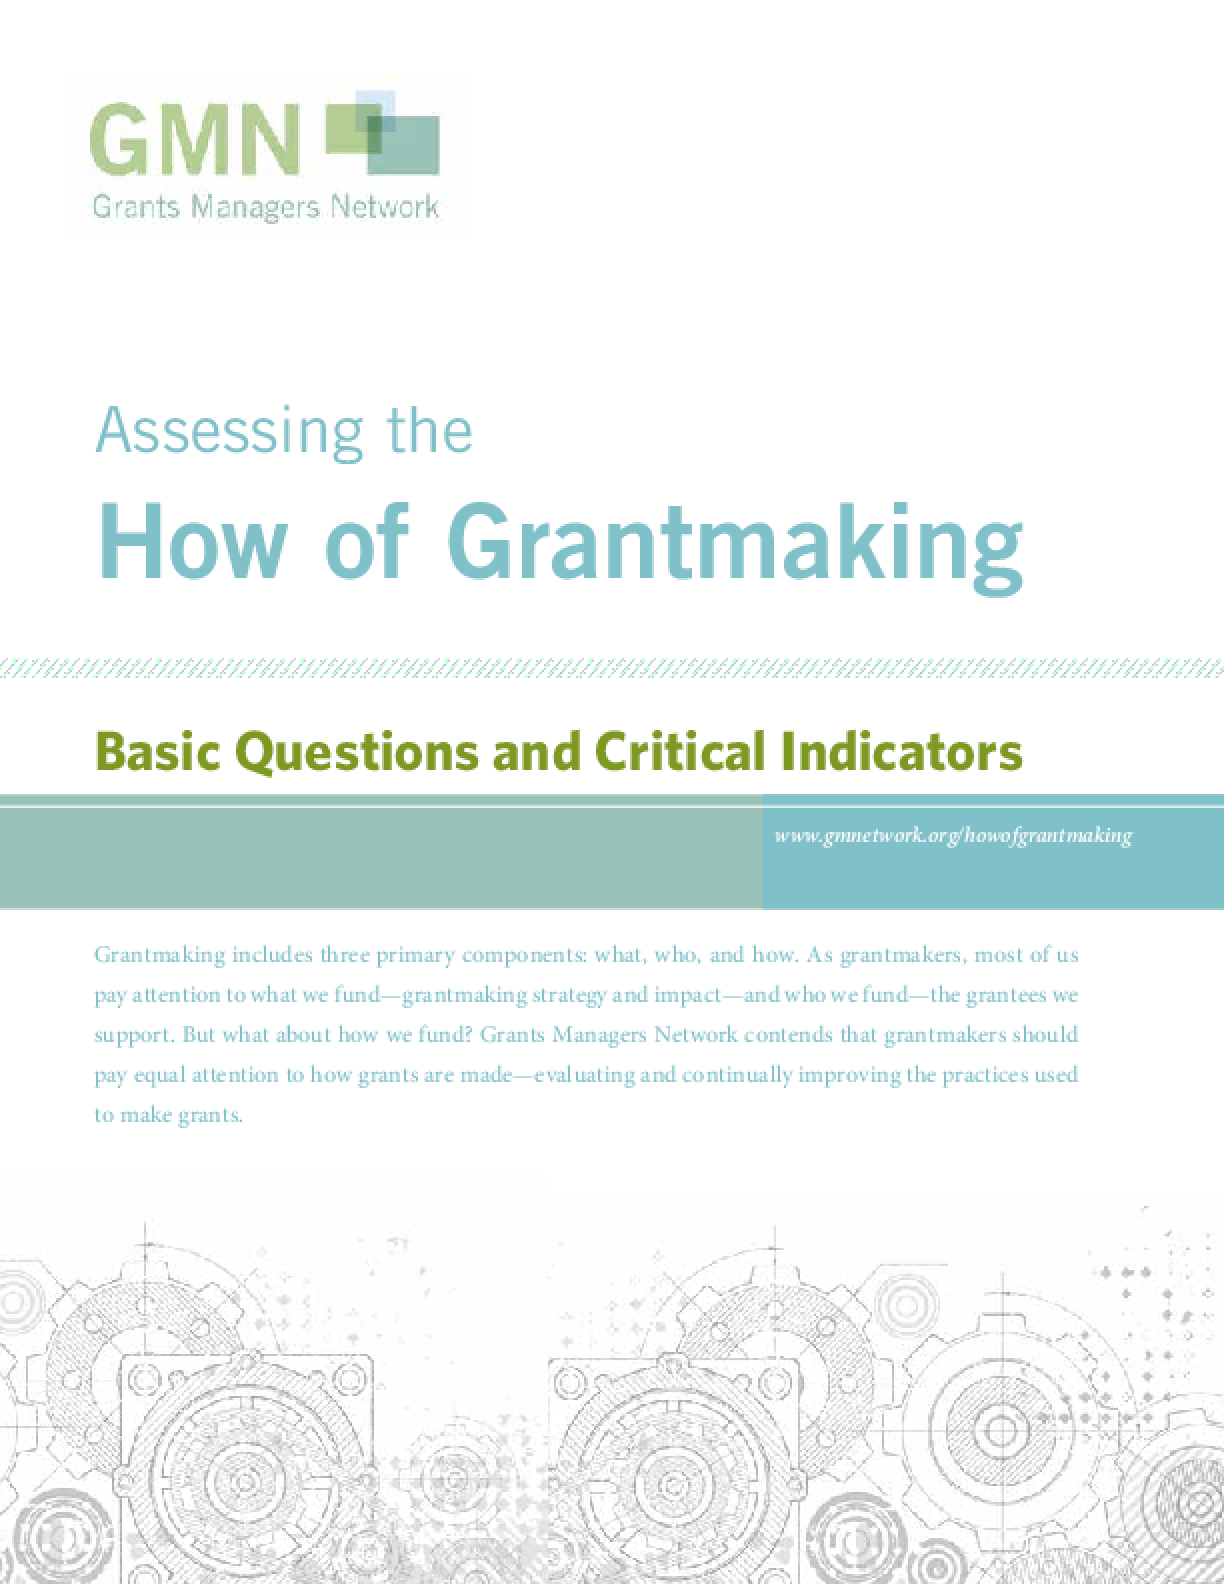 Assessing the How of Grantmaking: Basic Questions and Critical Indicators